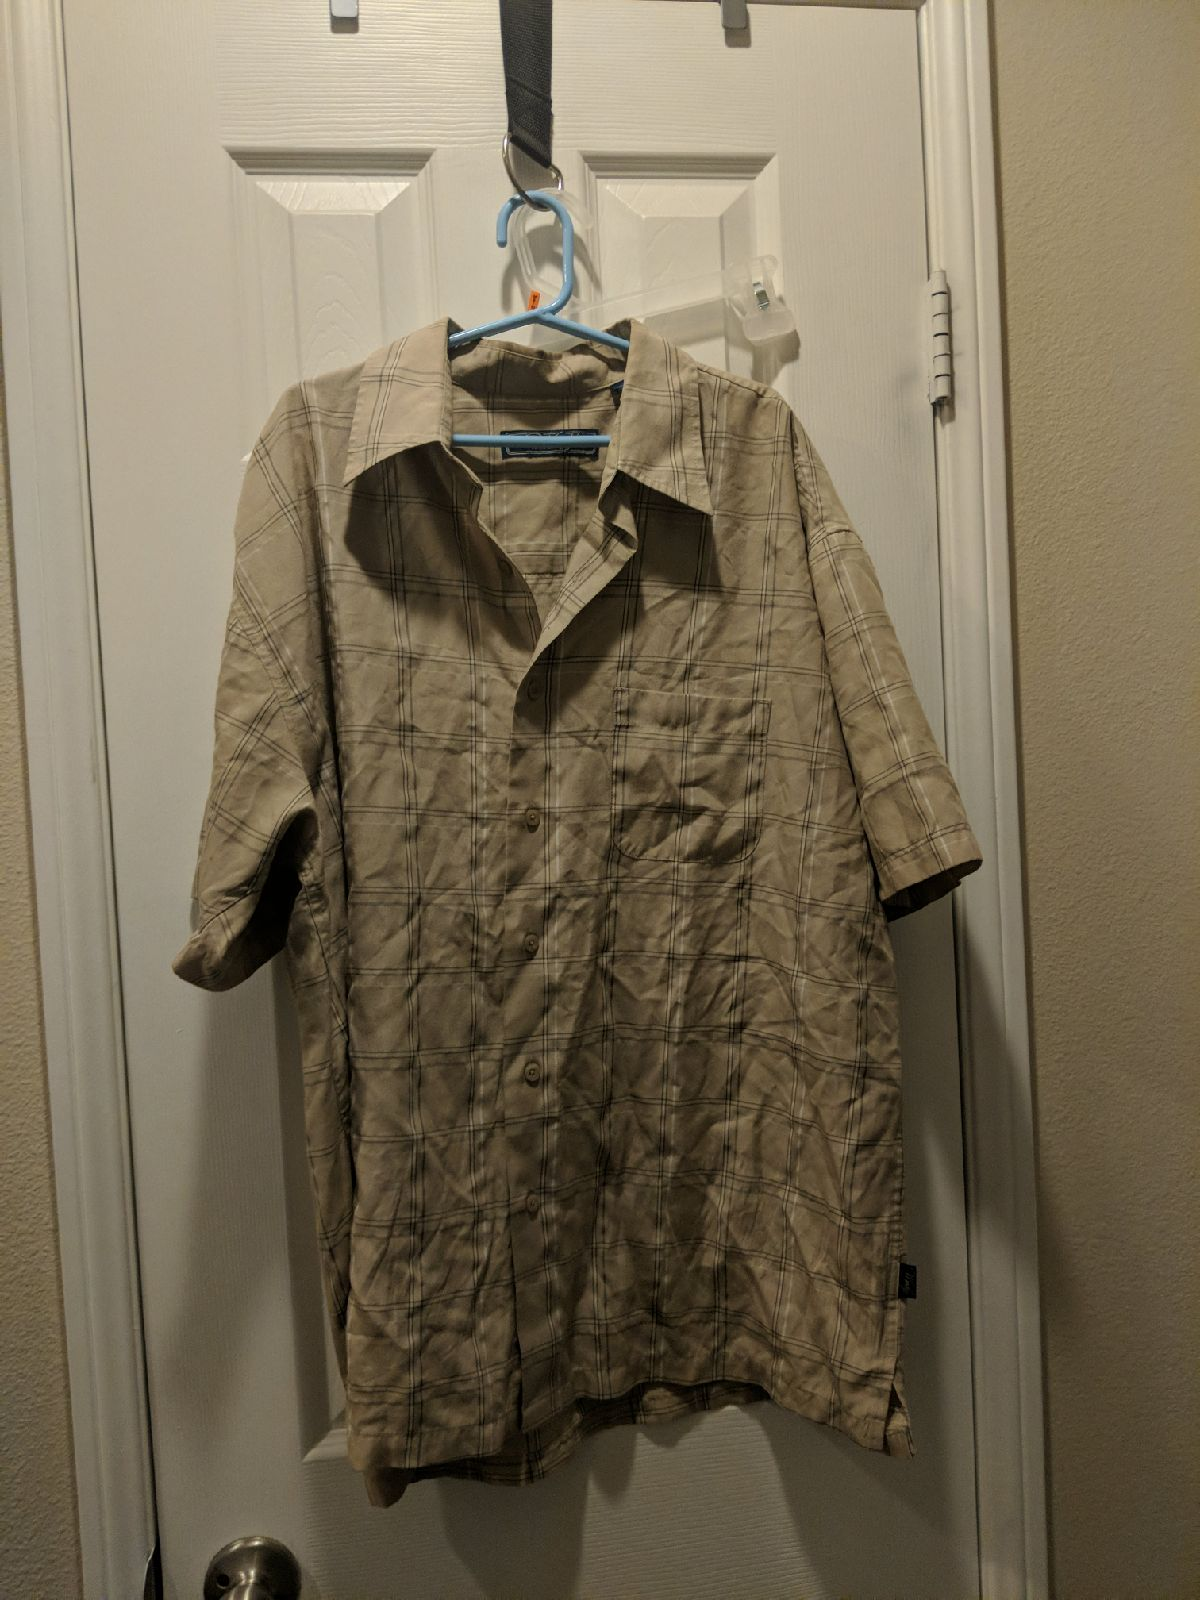 Woody's retro Lounge button-up shirt